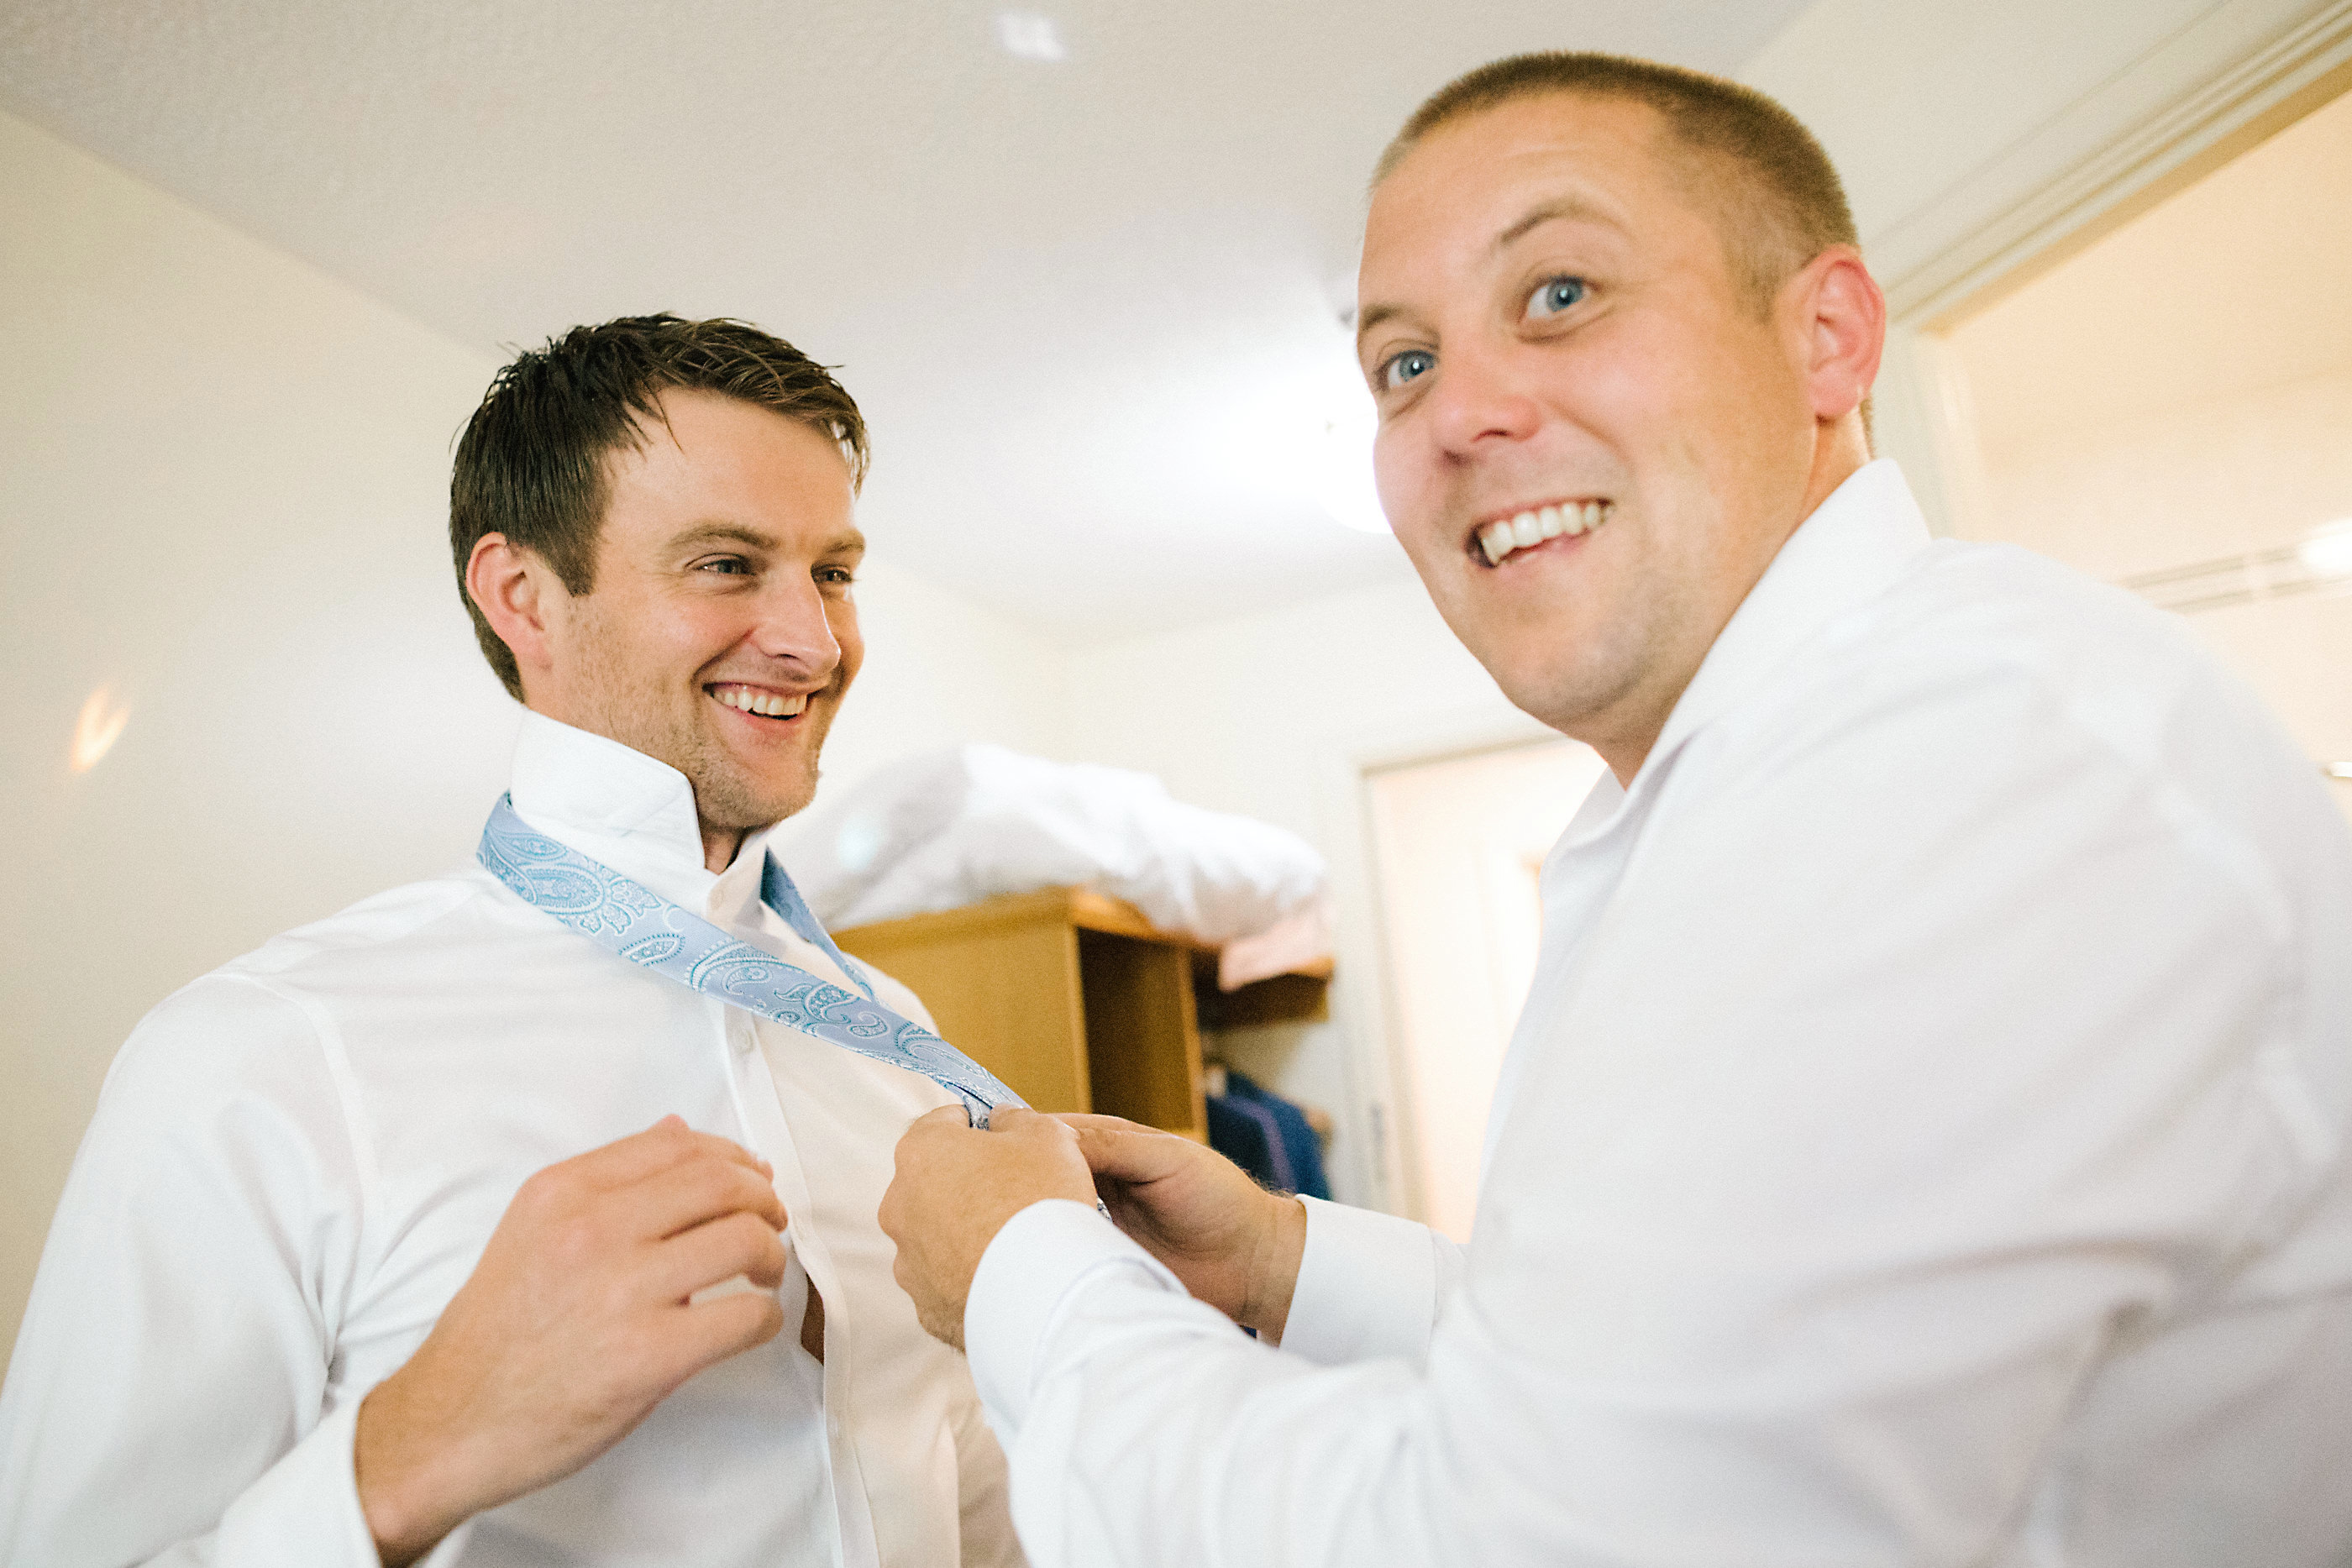 best man doing grooms tie